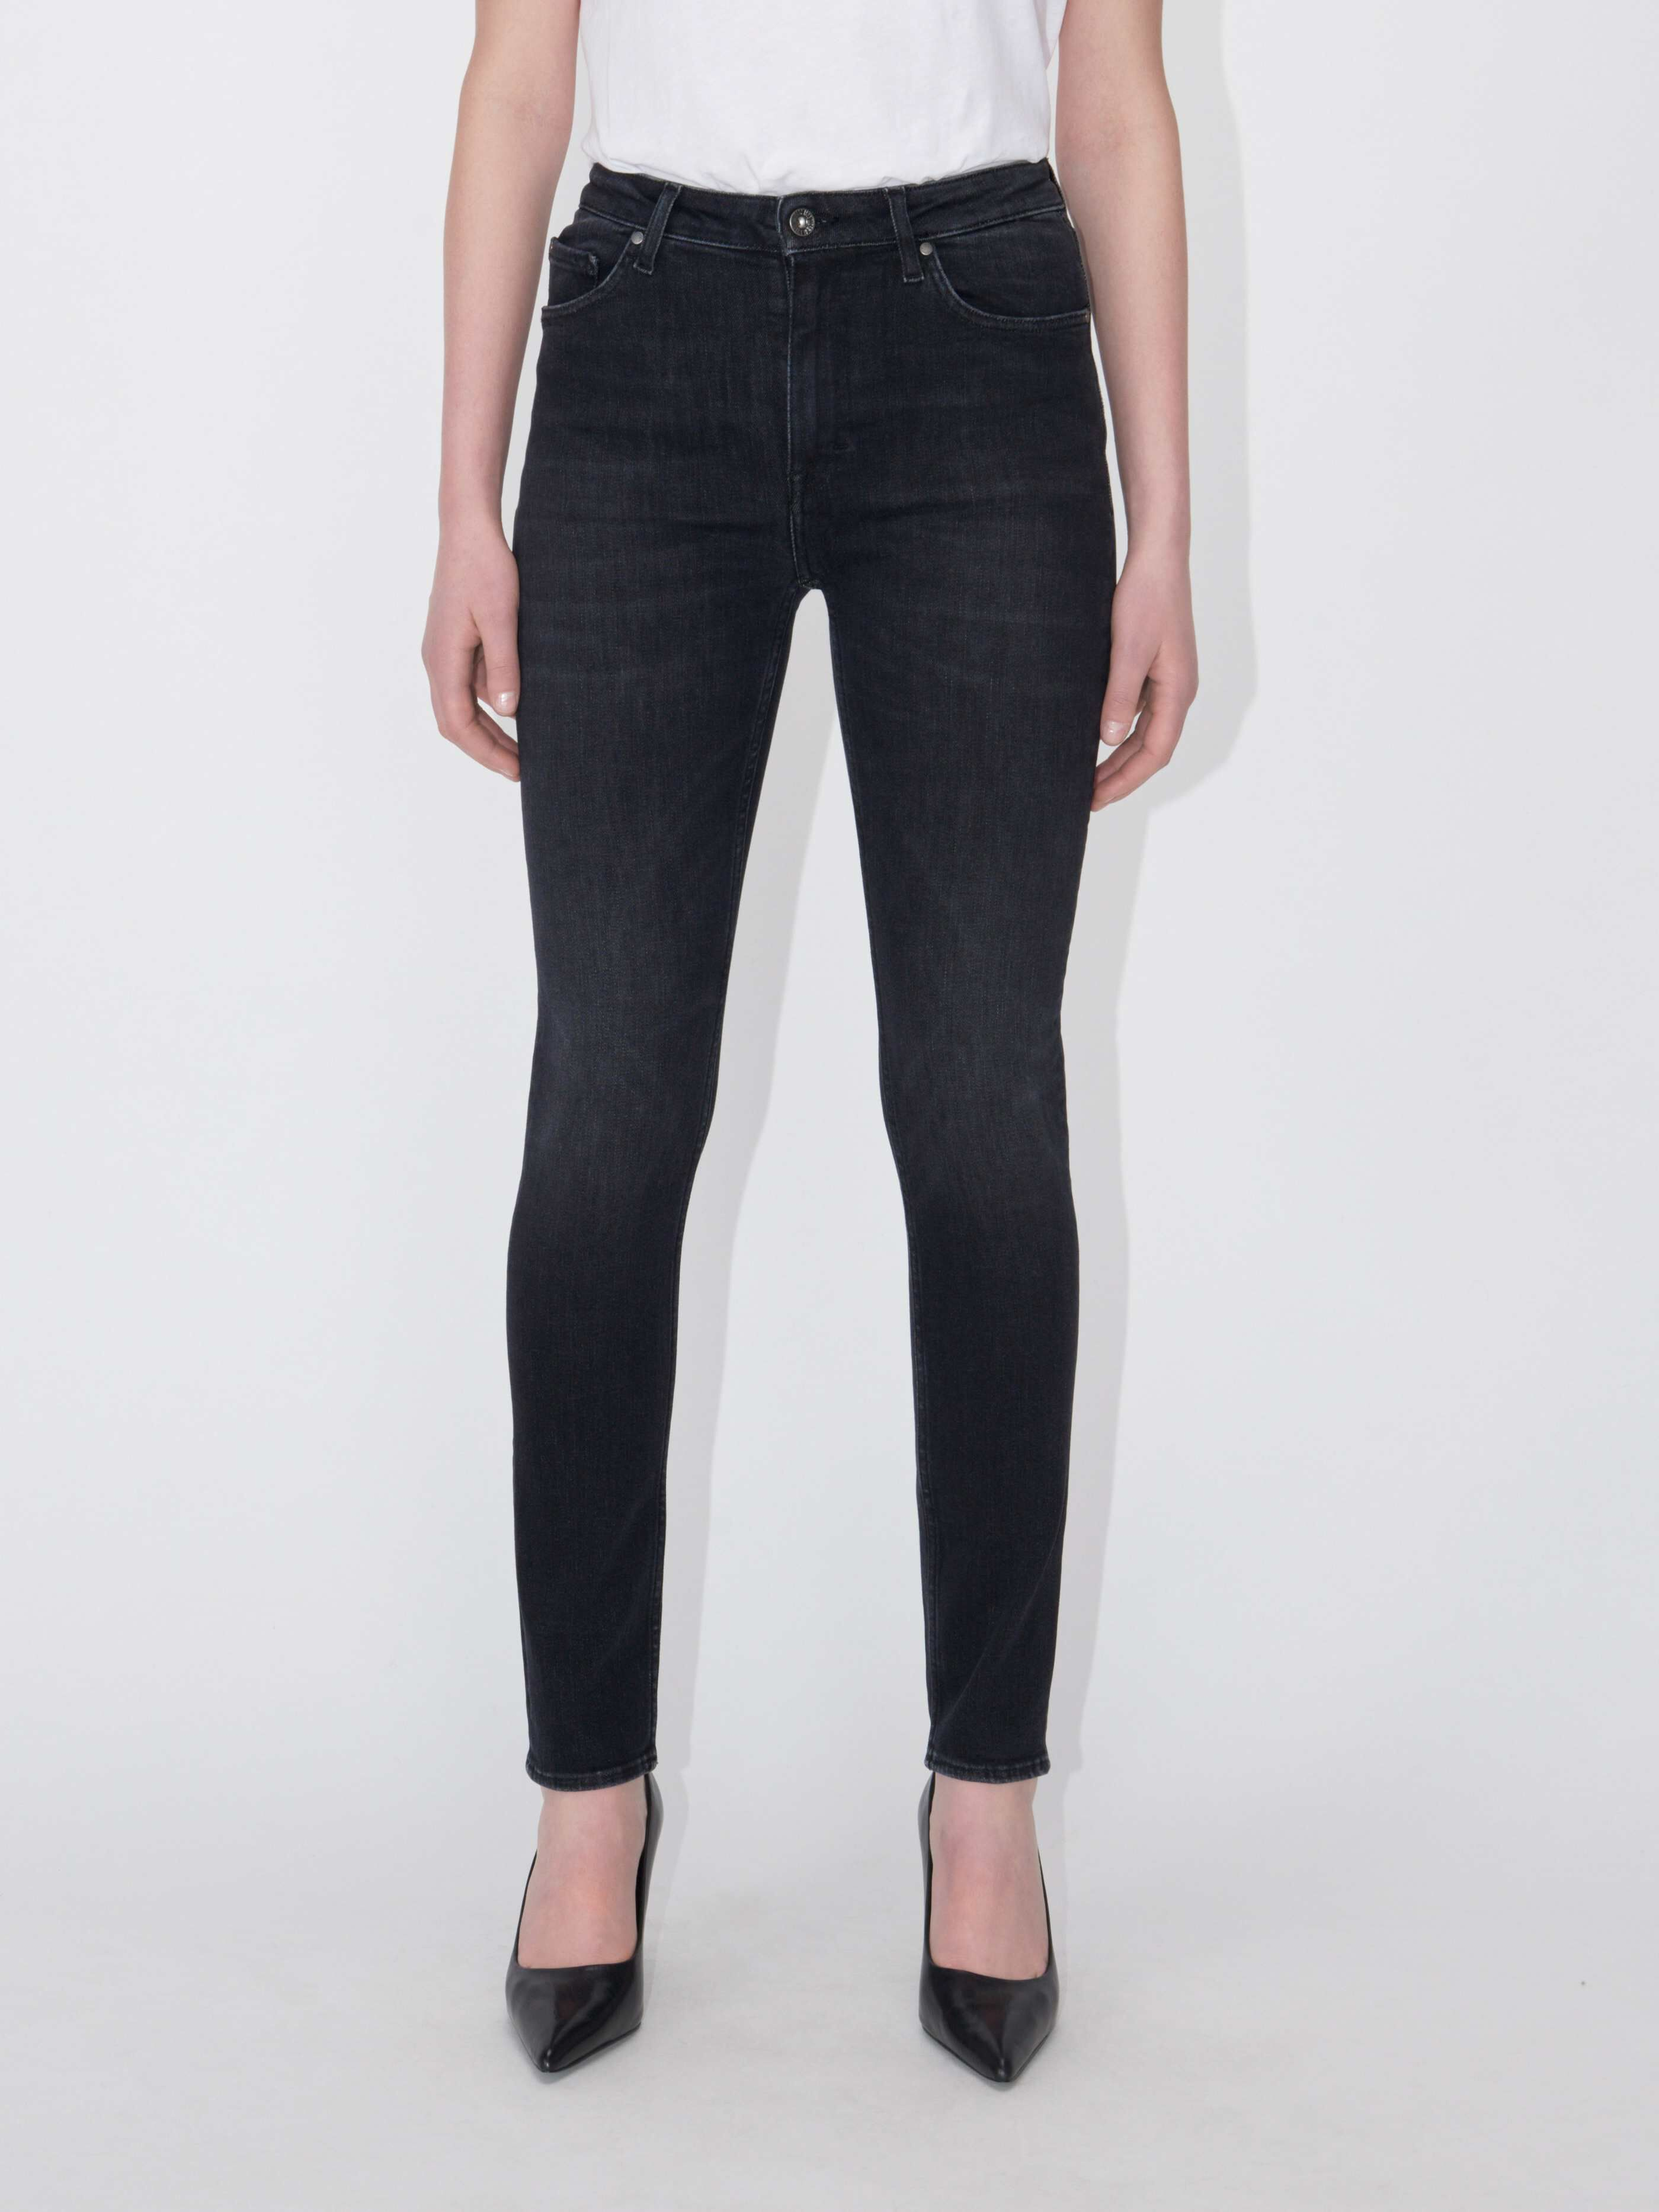 Shelly Jeans Buy online